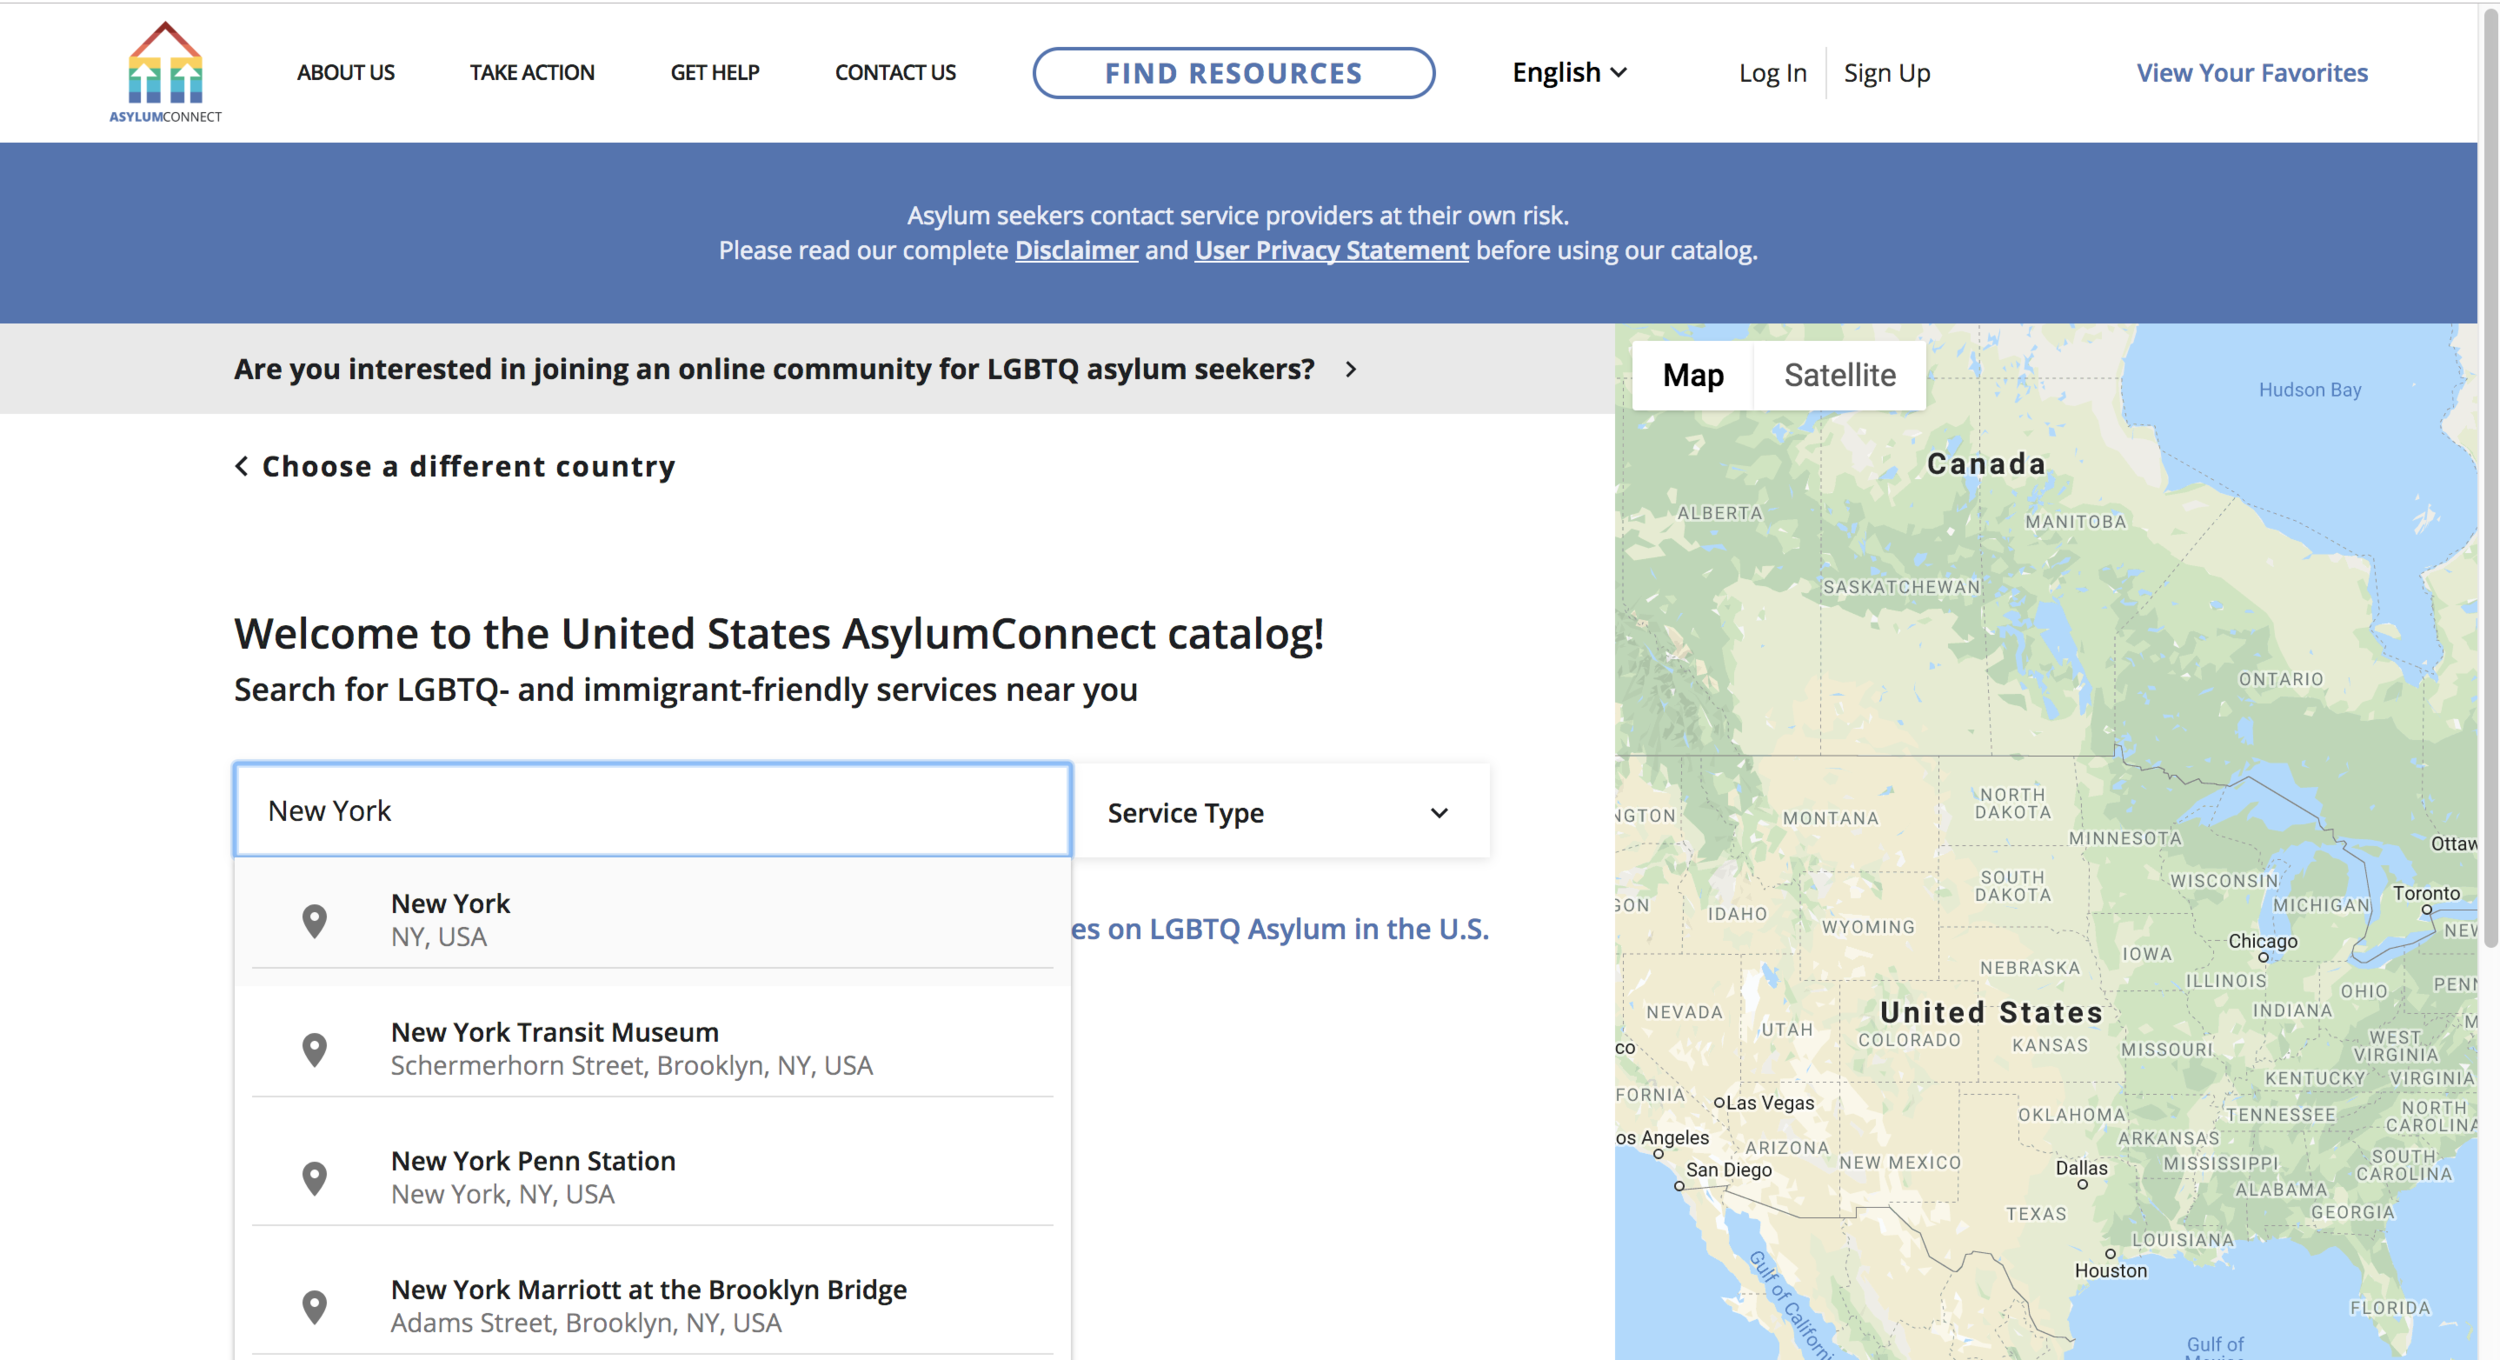 Welcome to the United States AsylumConnect catalog.